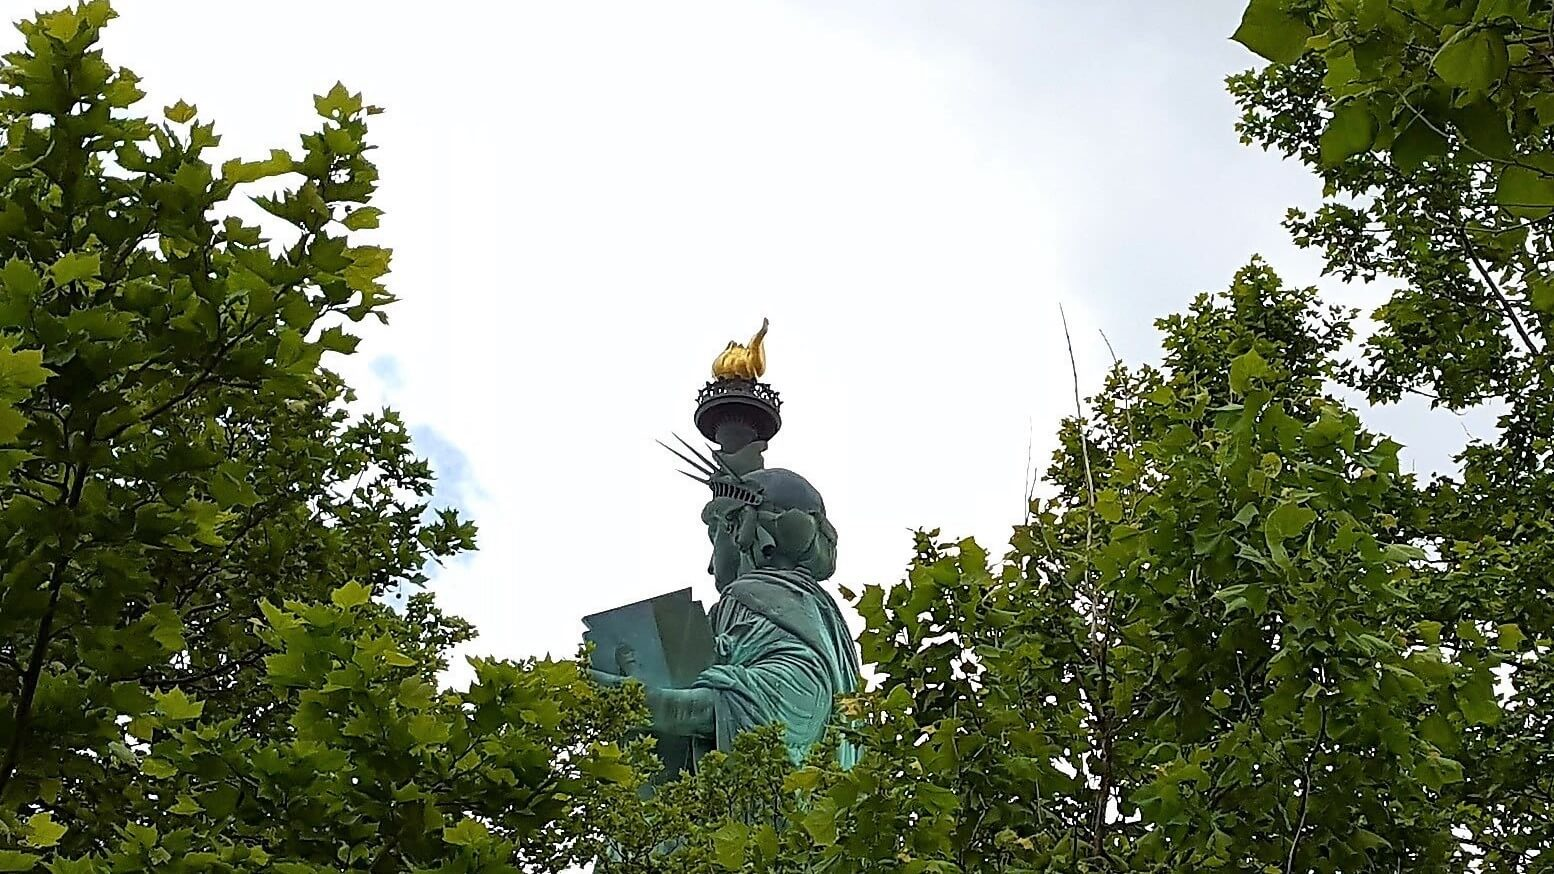 New York's Lady Liberty through the trees (photo by Sheila Scarborough)